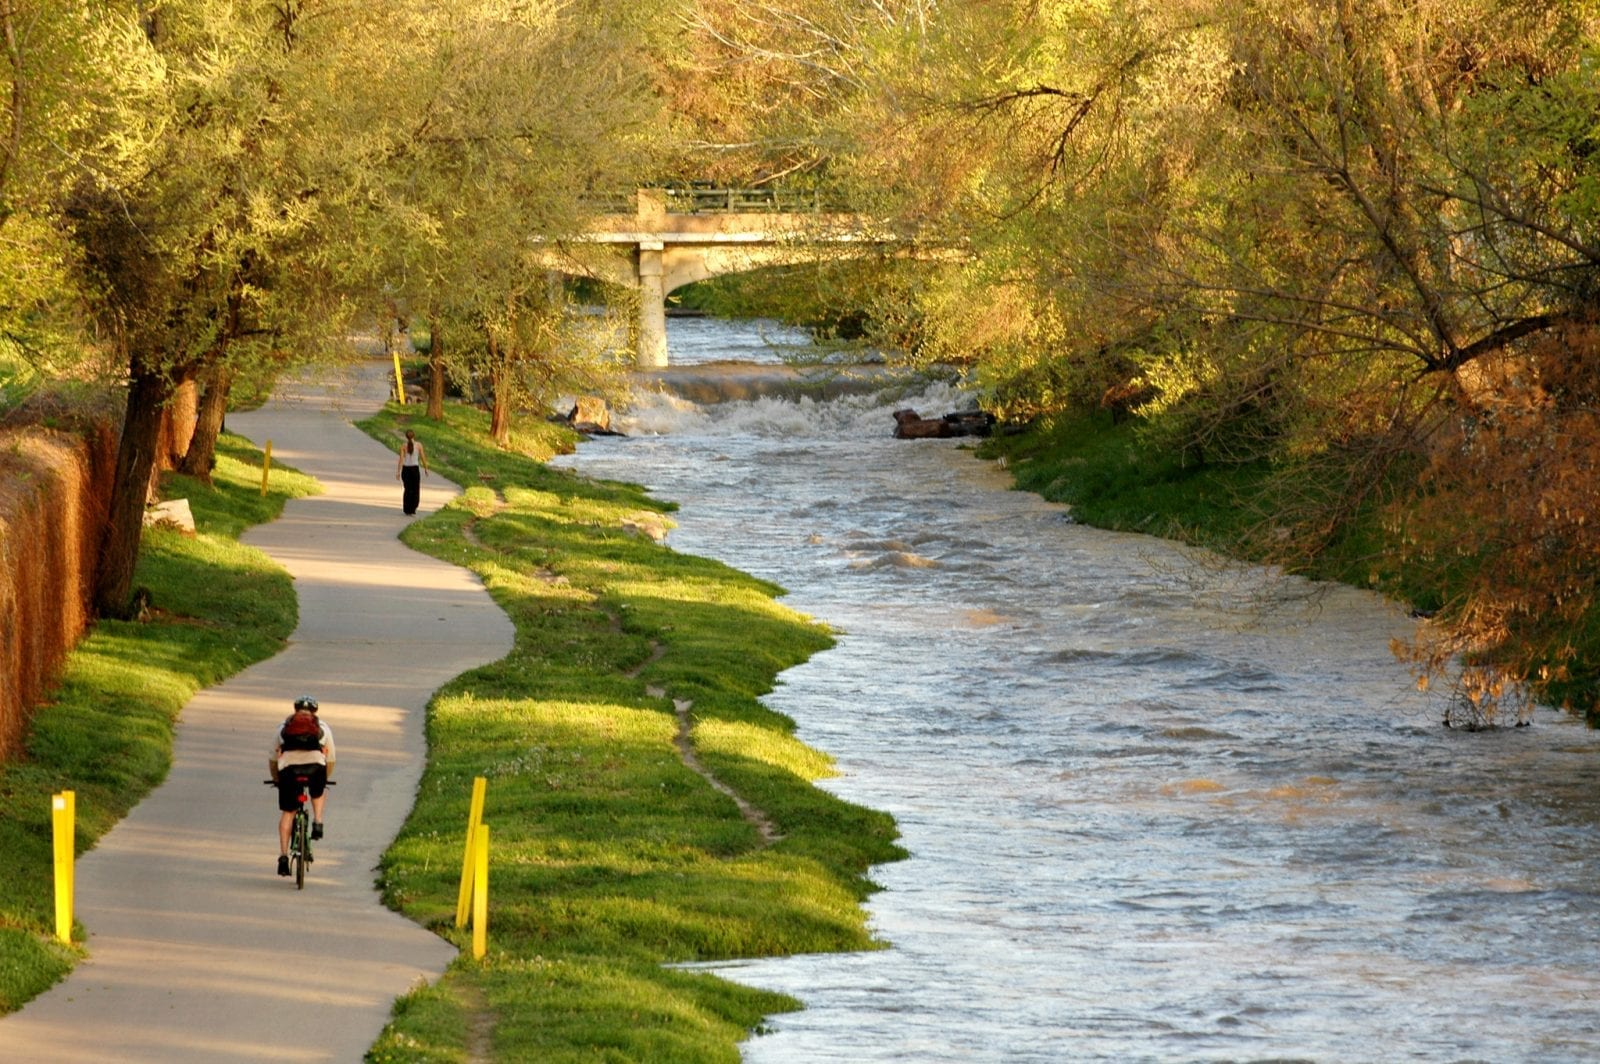 Image of a biker next to the Cherry Creek in Colorado